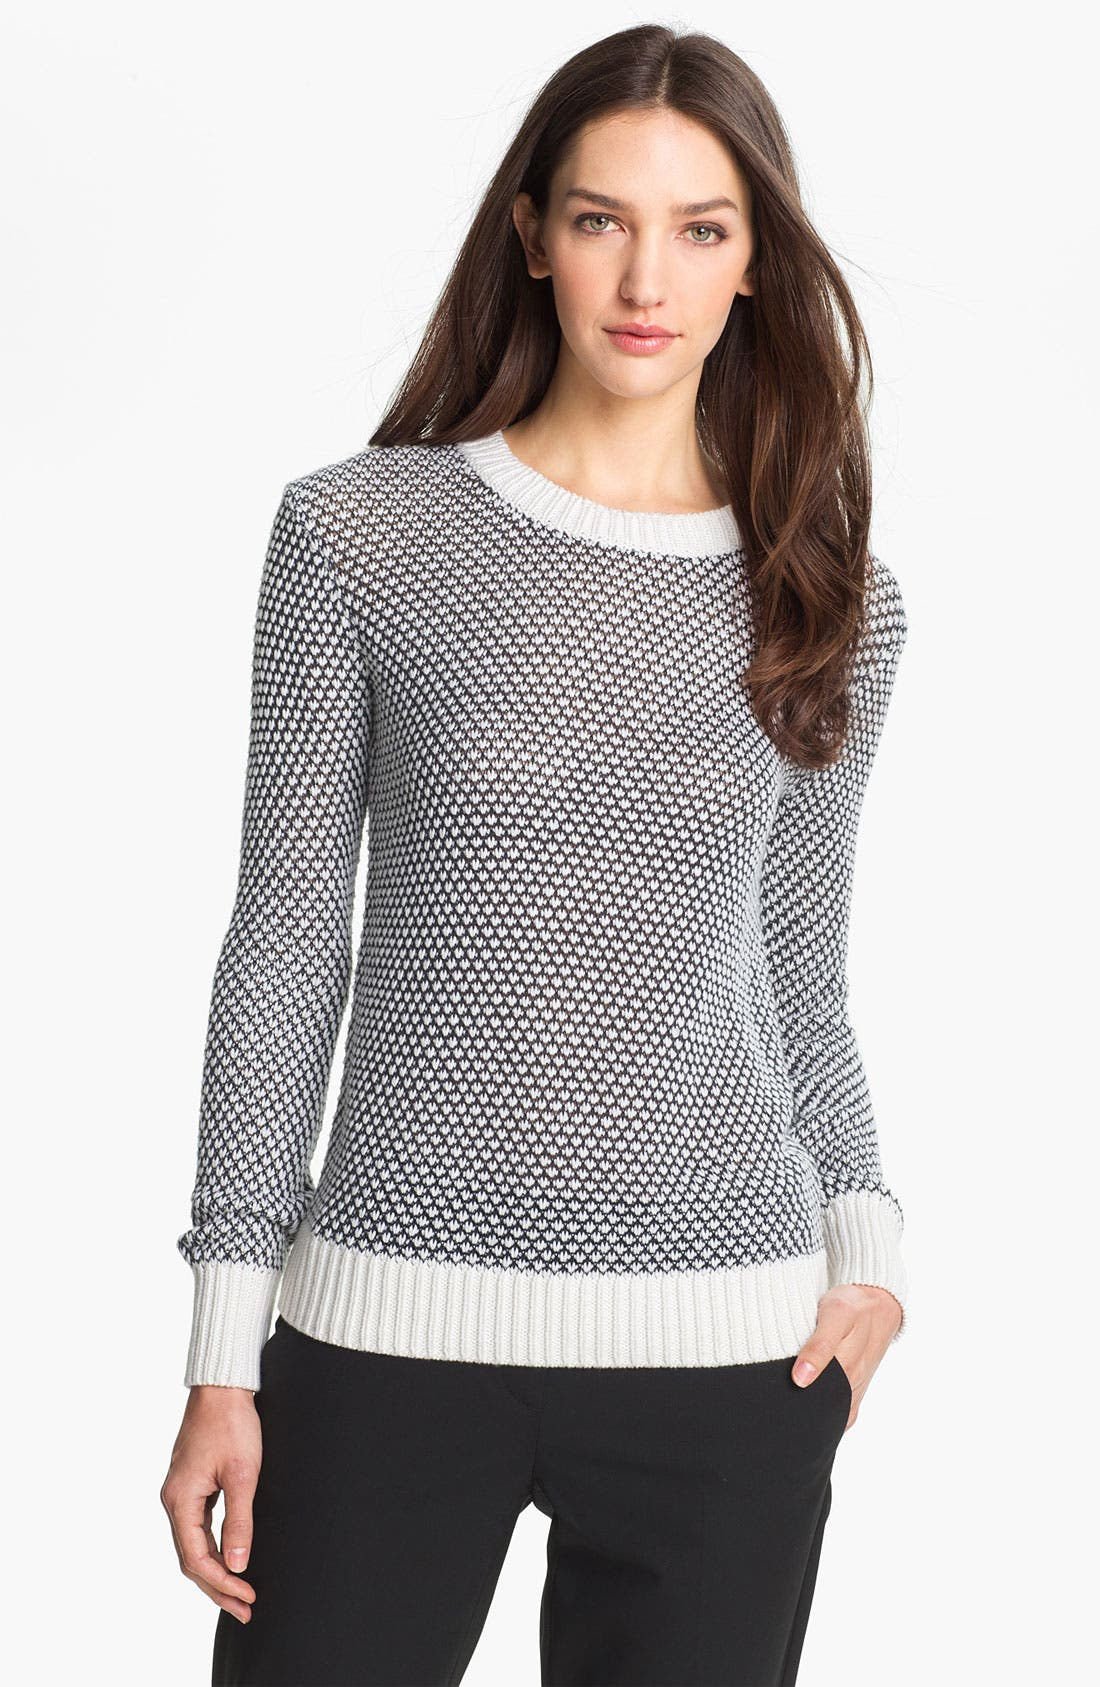 Alternate Image 1 Selected - Theory 'Ferlise' Sweater